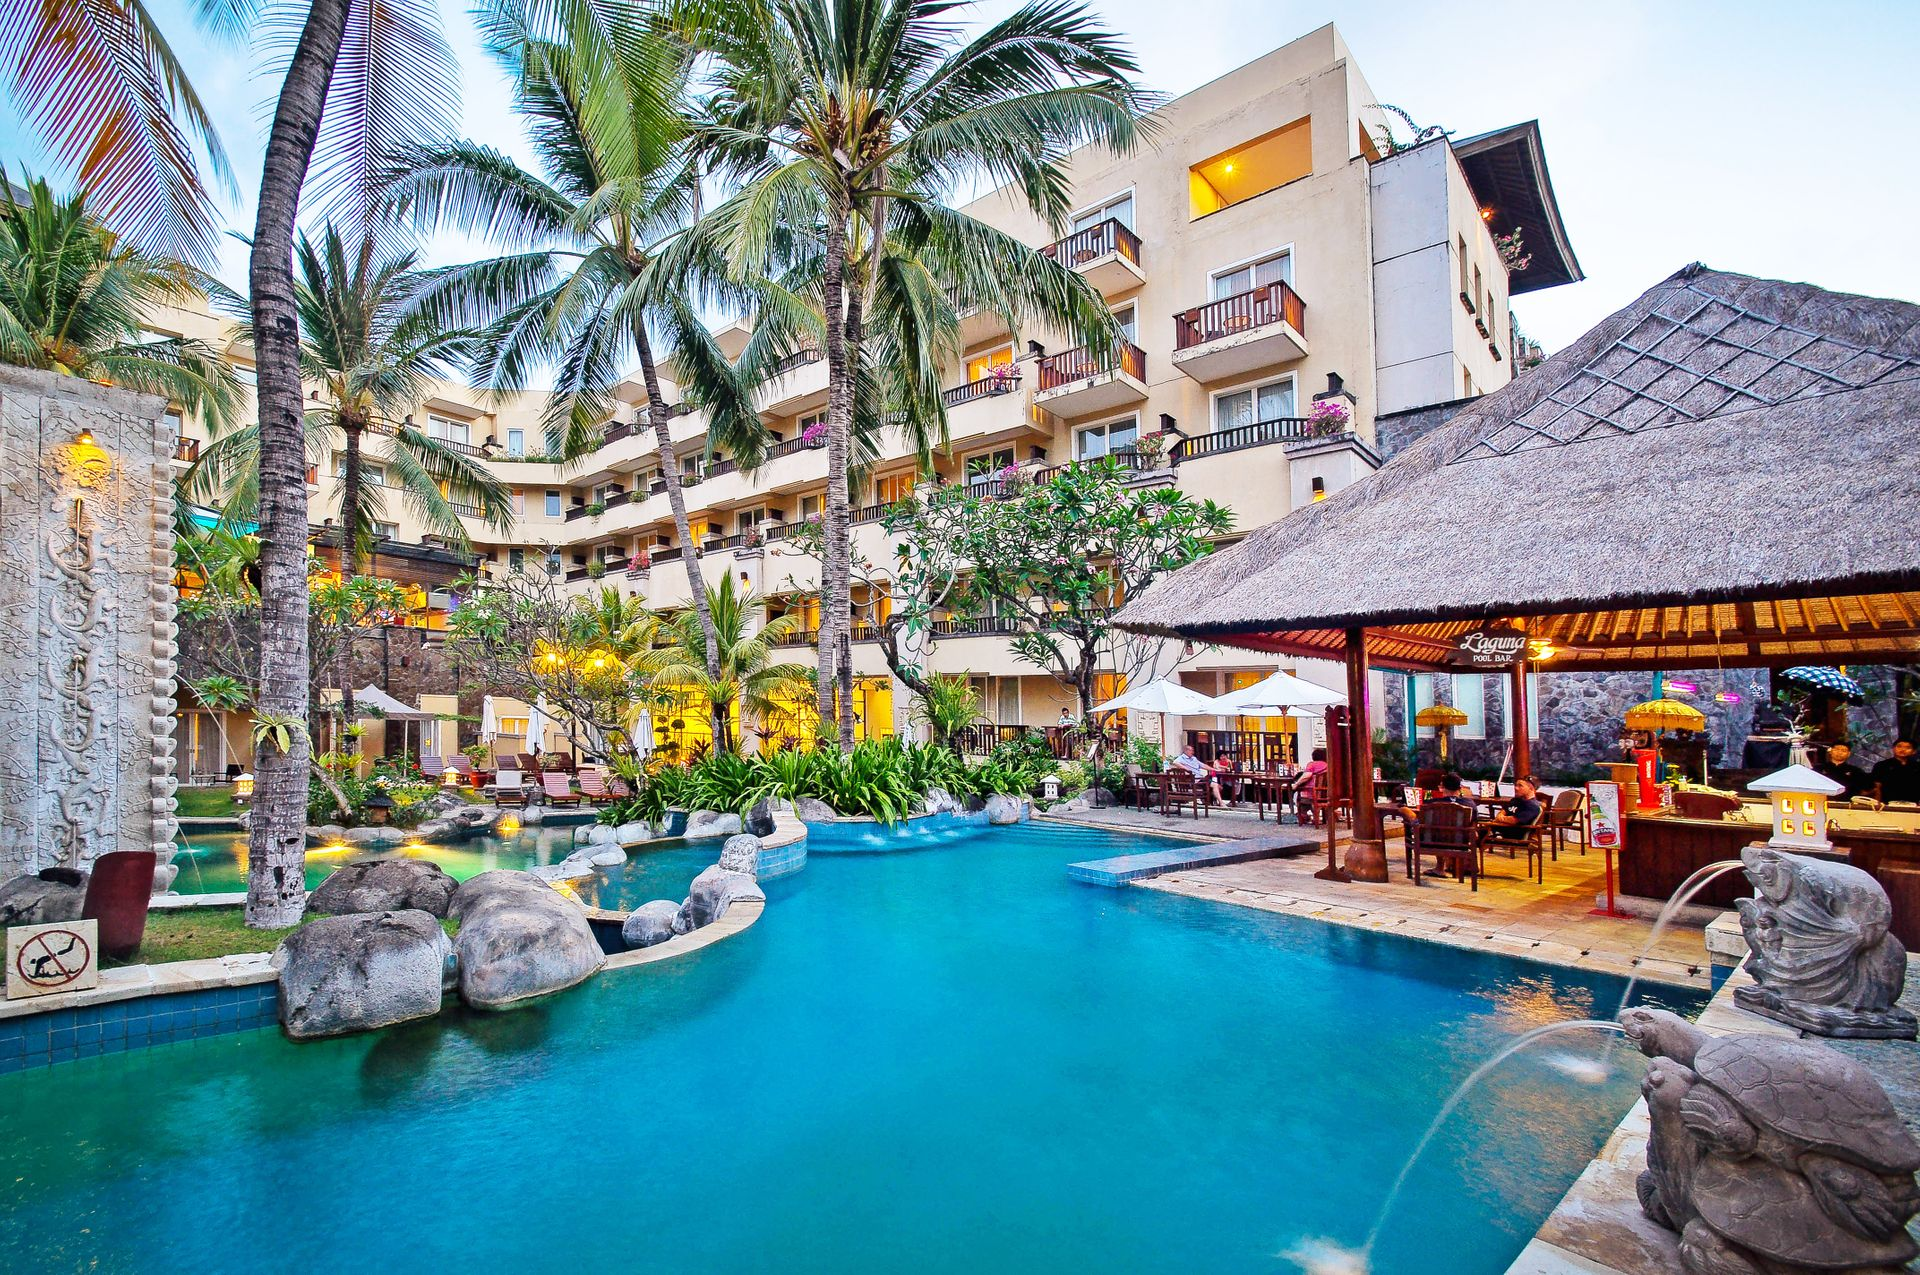 Kuta Paradiso Hotel Bali Indonesia I Official Online Hotel Booking